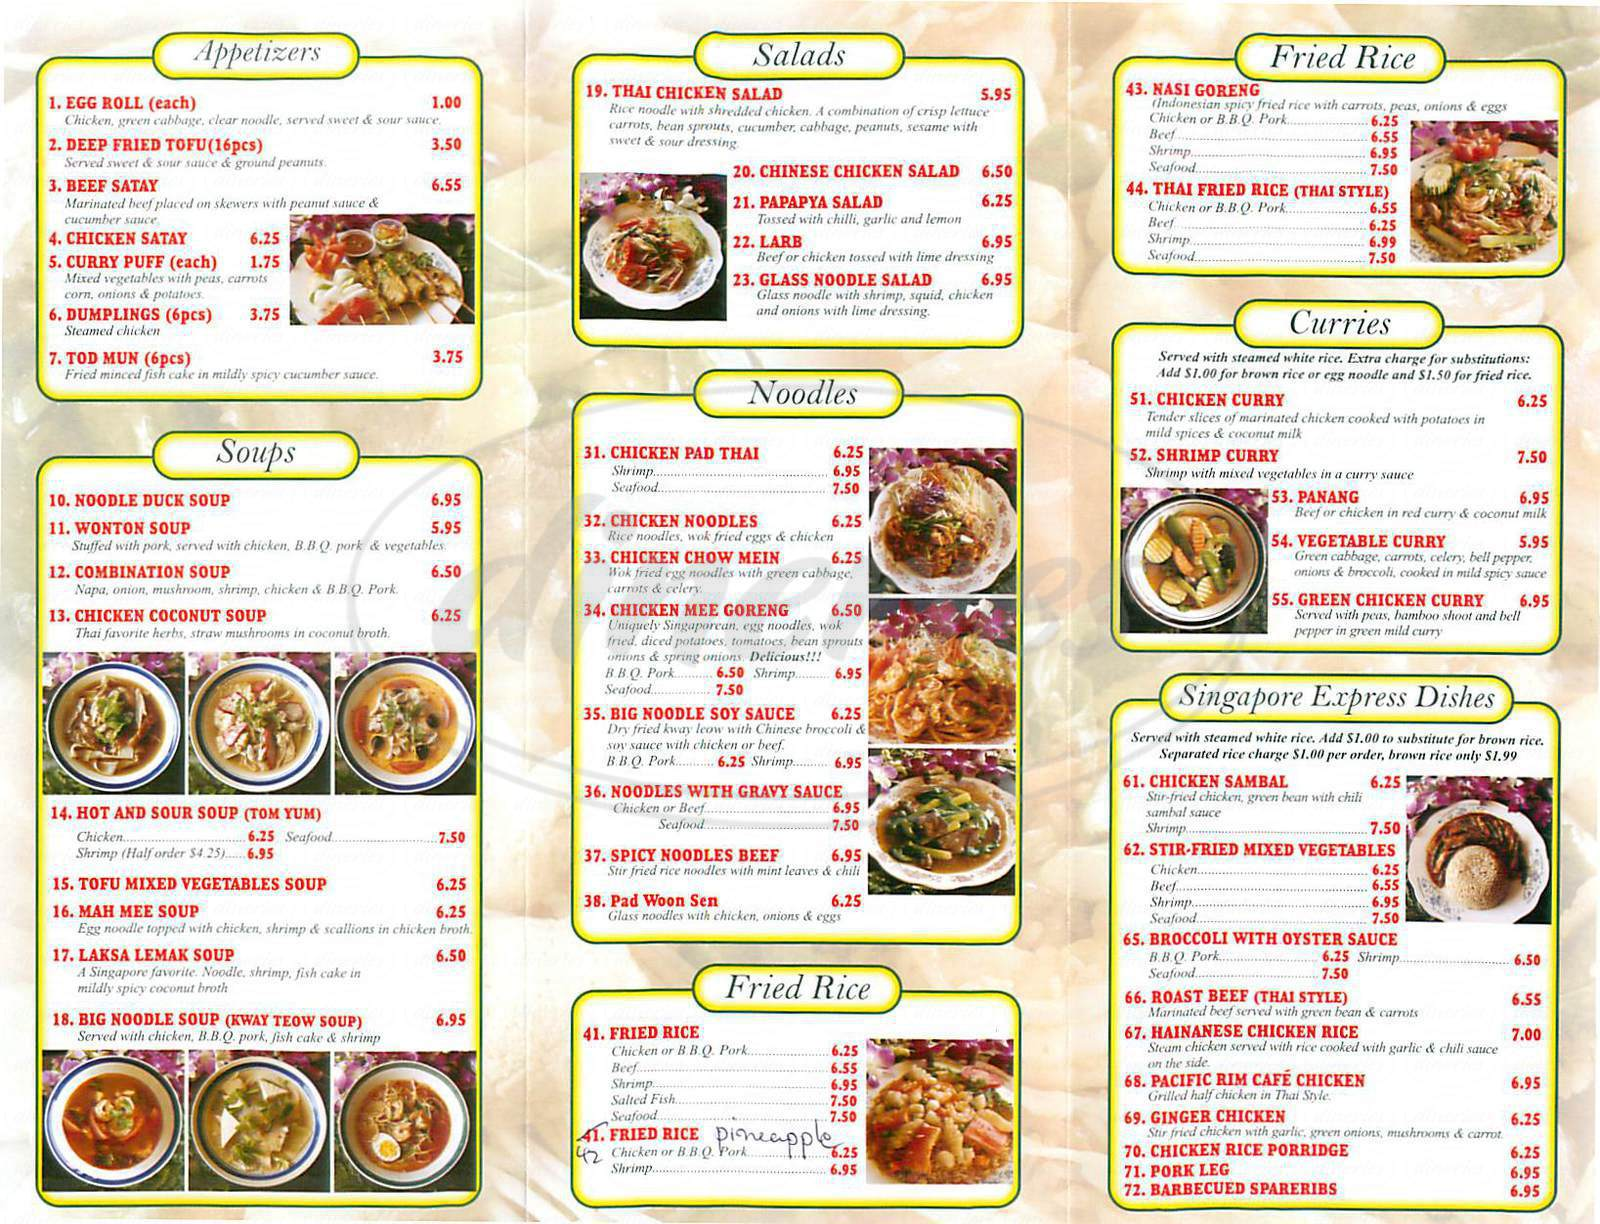 menu for Singapore Express